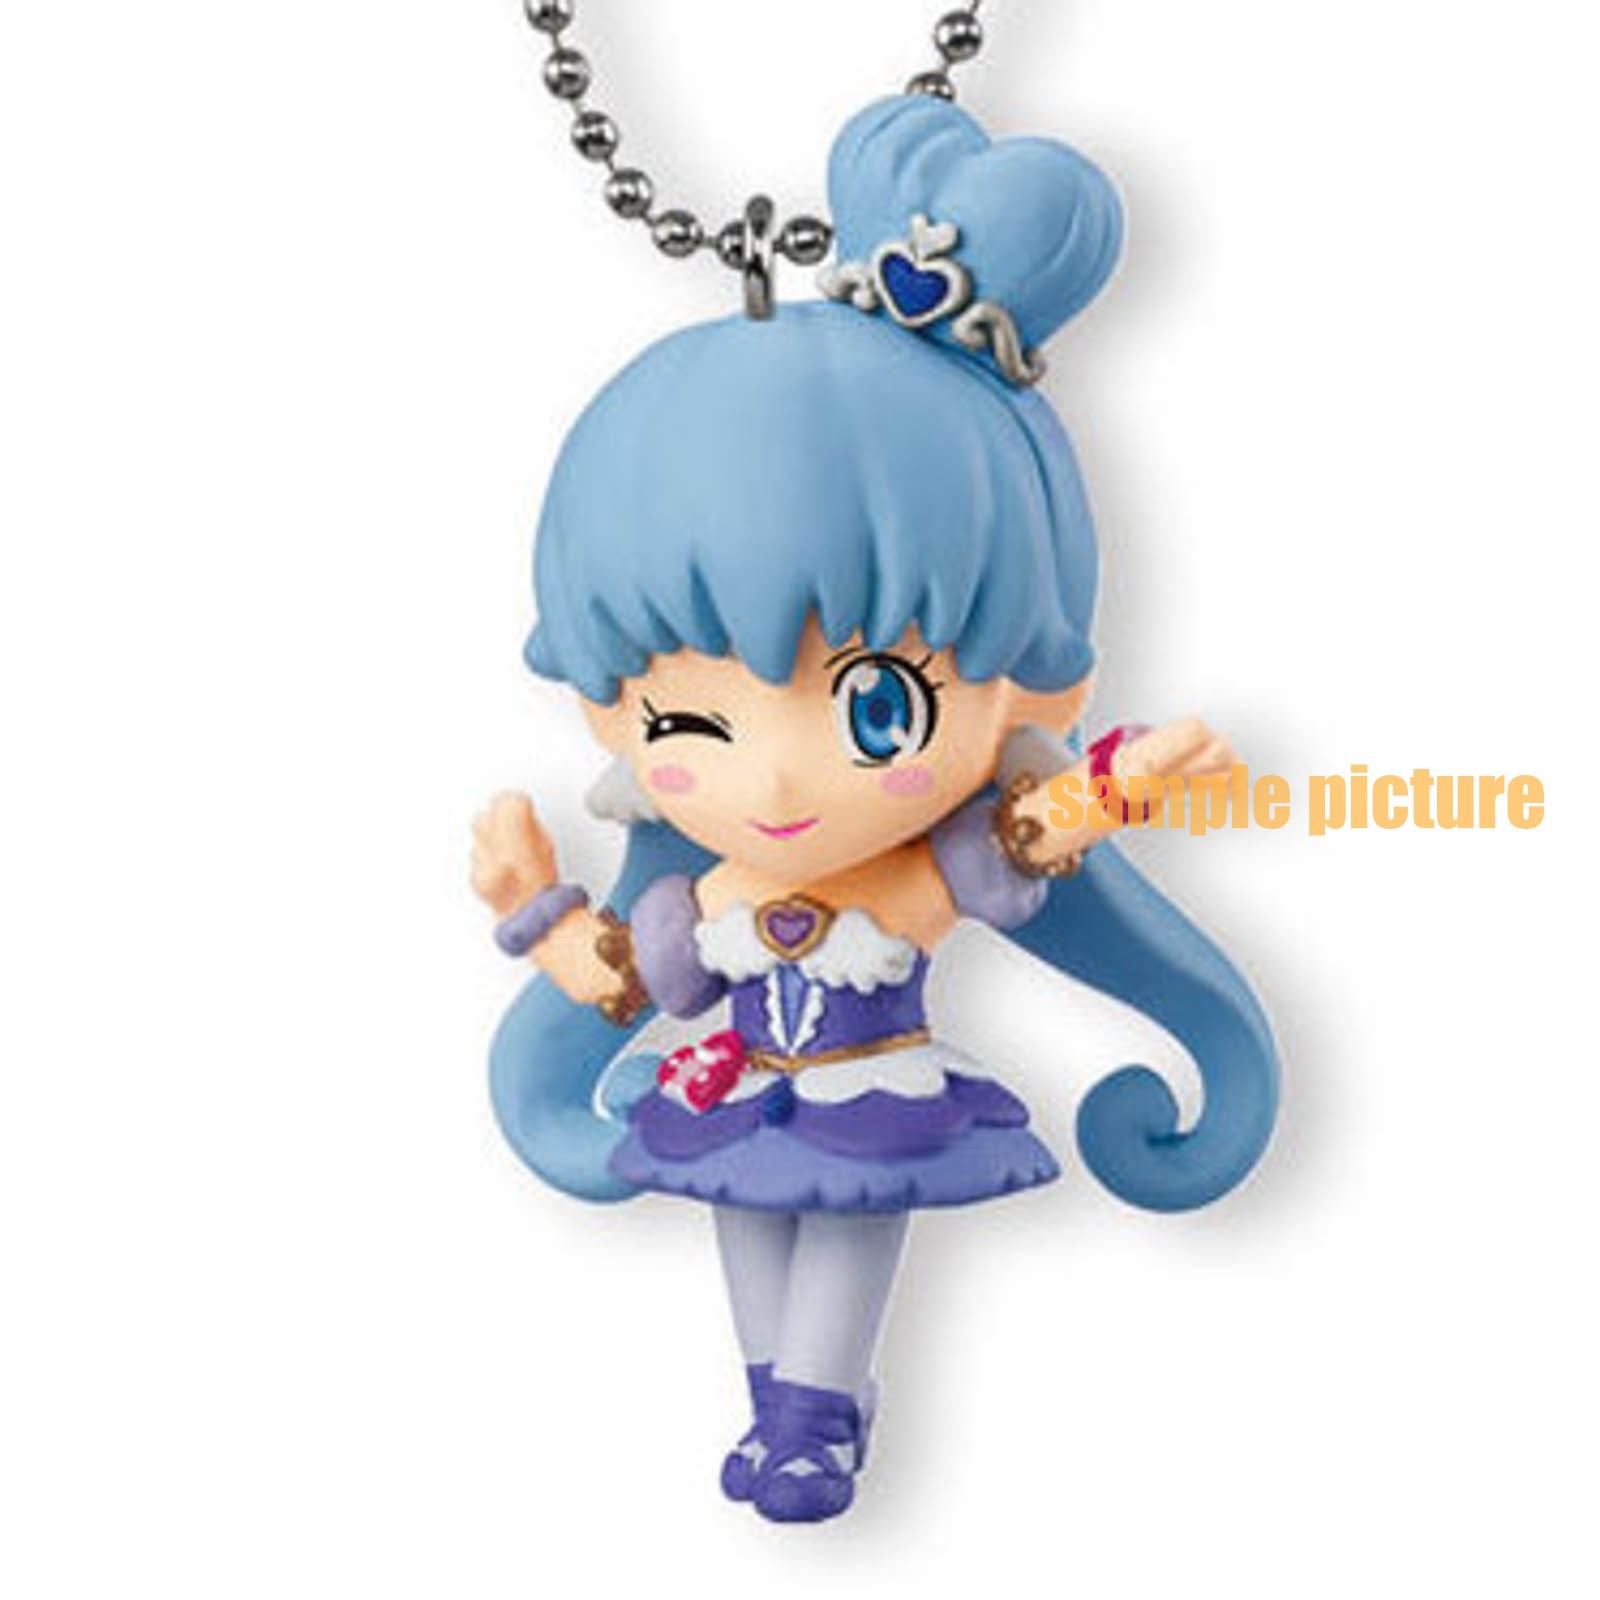 HappinessCharge PreCure! Cure Princess (Sherbet ballet ver.) Mascot Figure Ball Keychain JAPAN ANIME